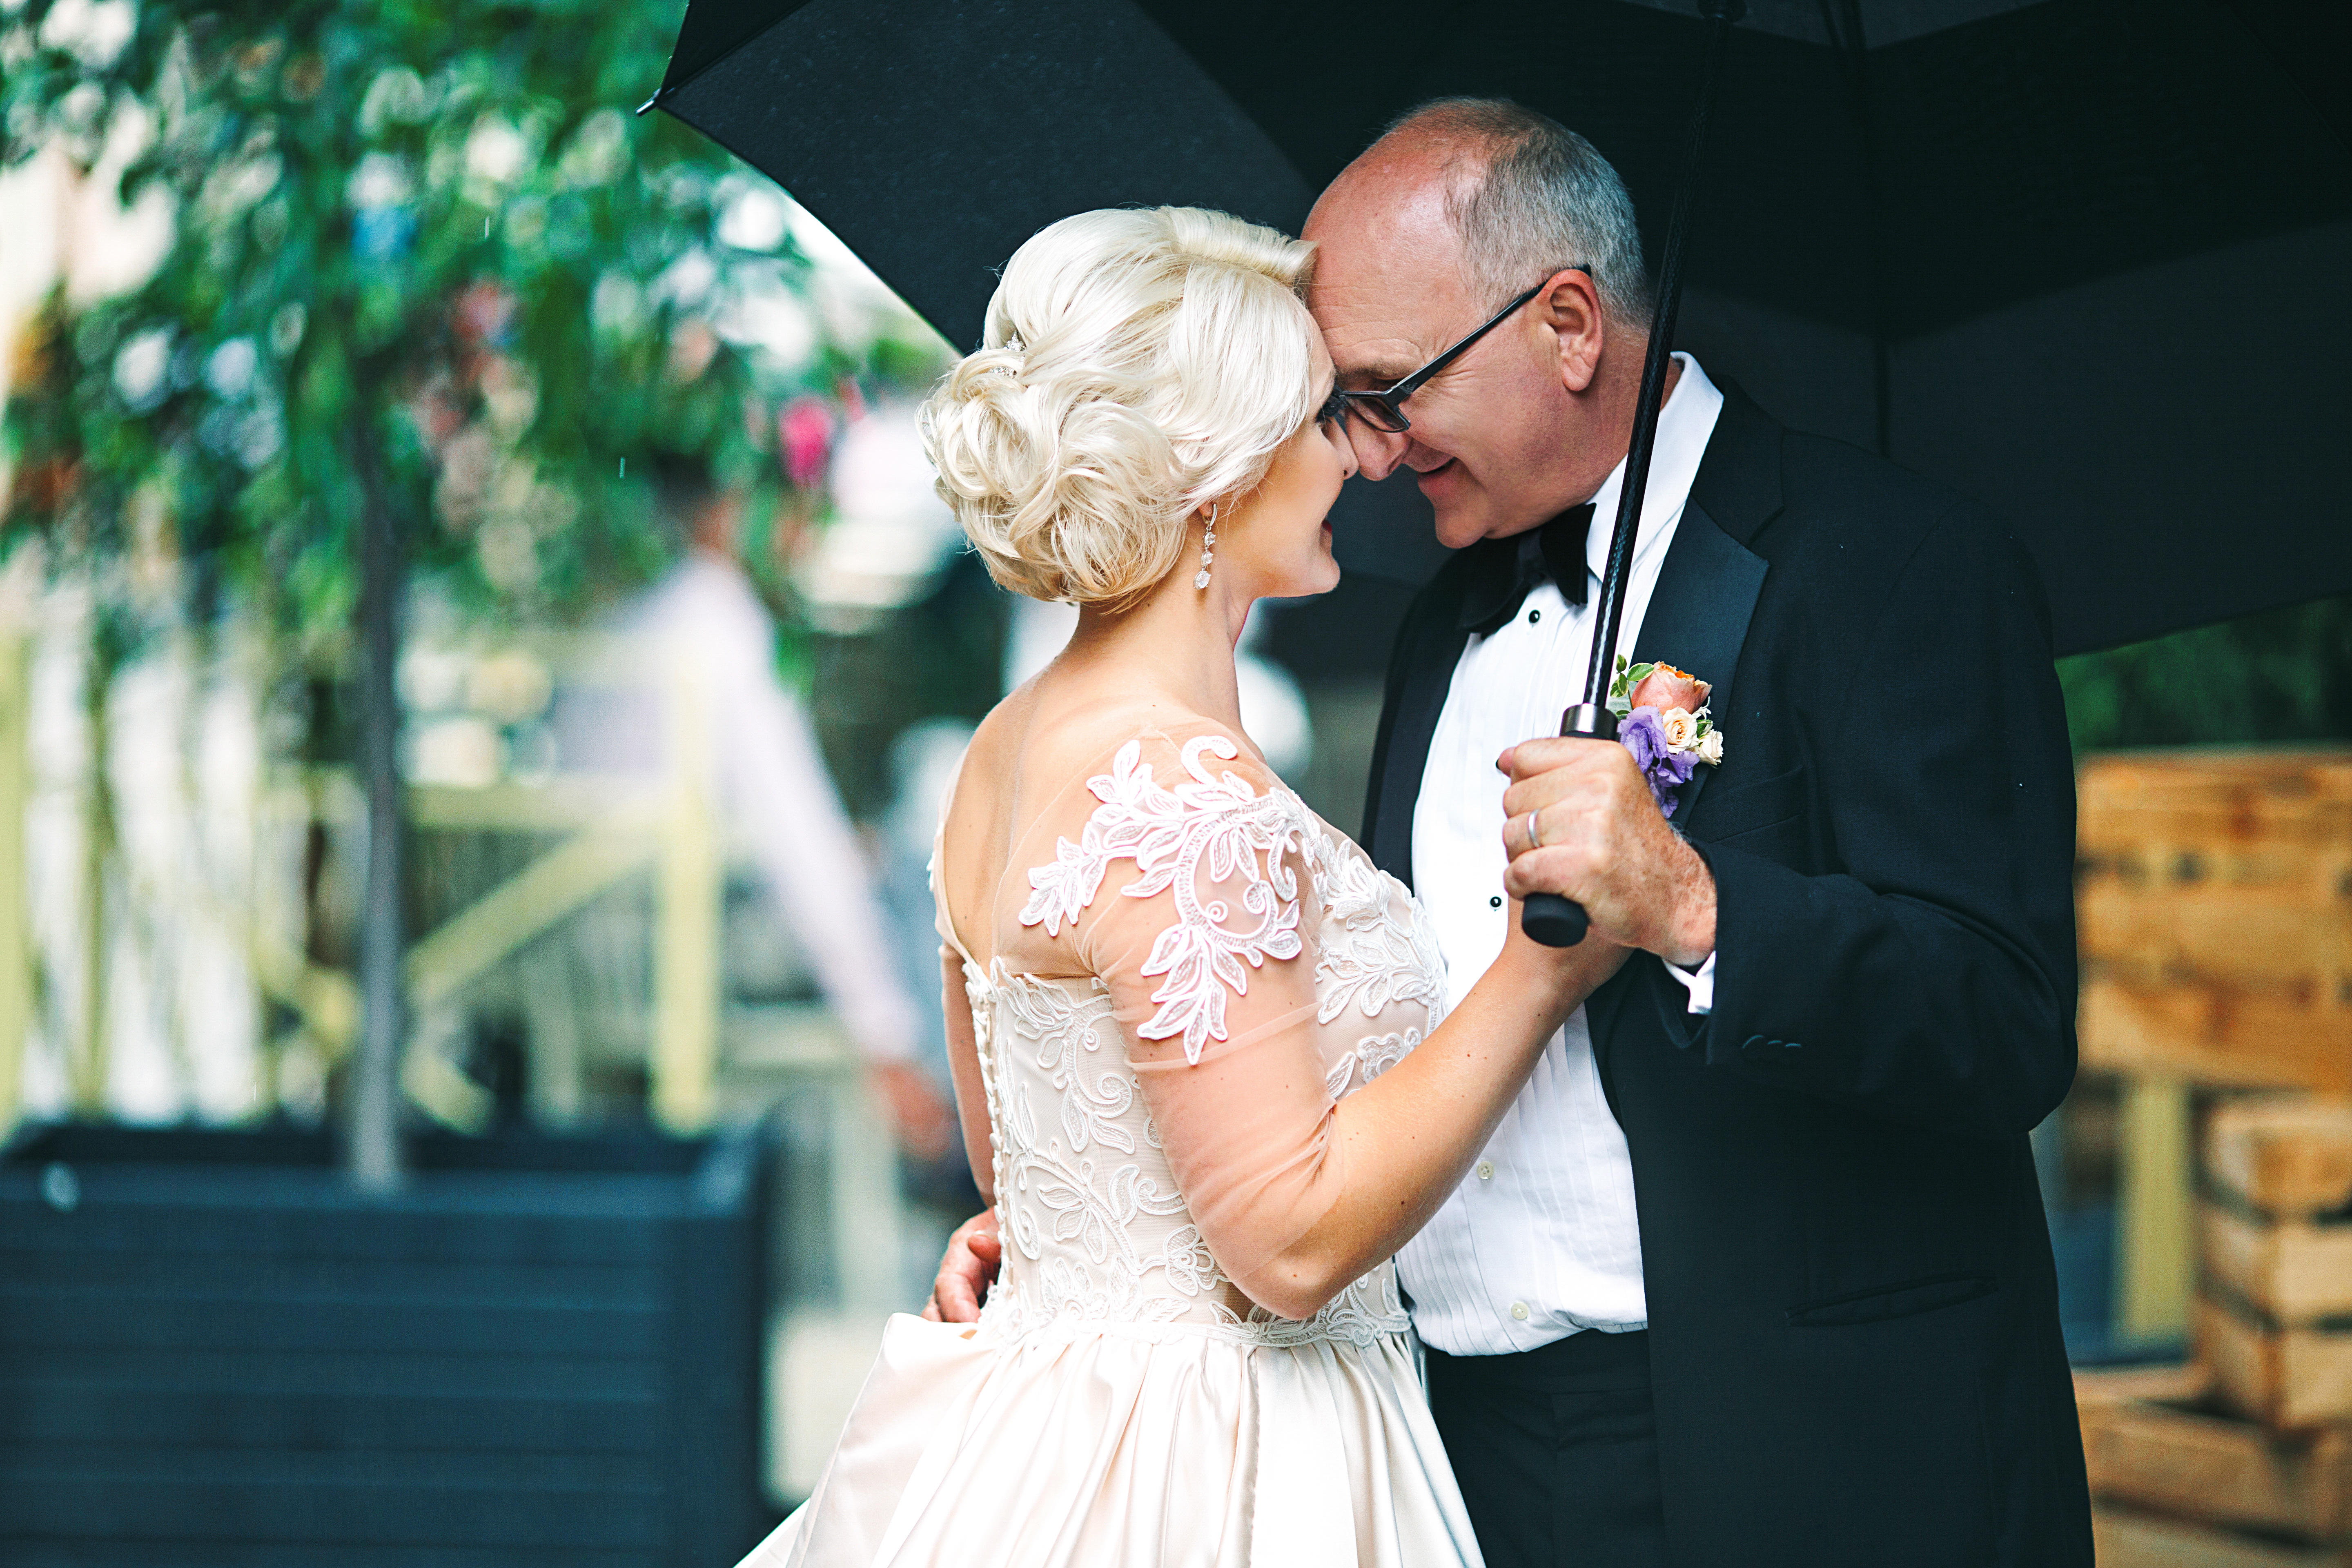 Does Getting Married Lower your Chances of Dementia?